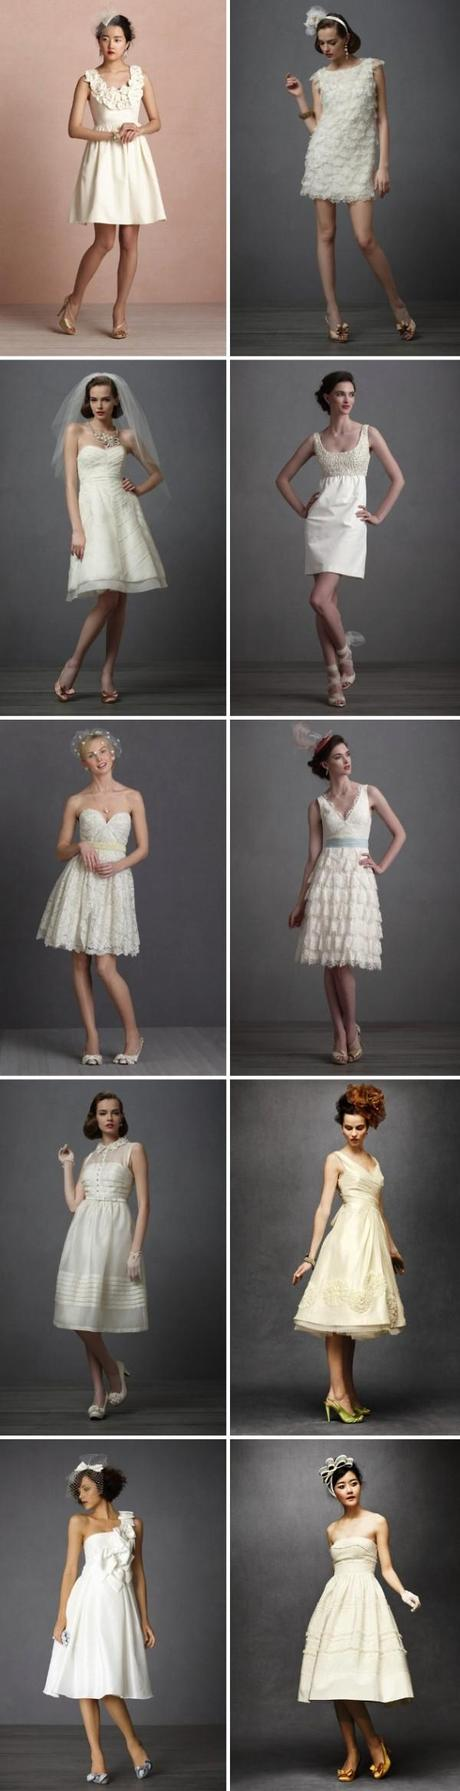 Vestidos cortos de BHLDN/Reception dresses from BHLDN